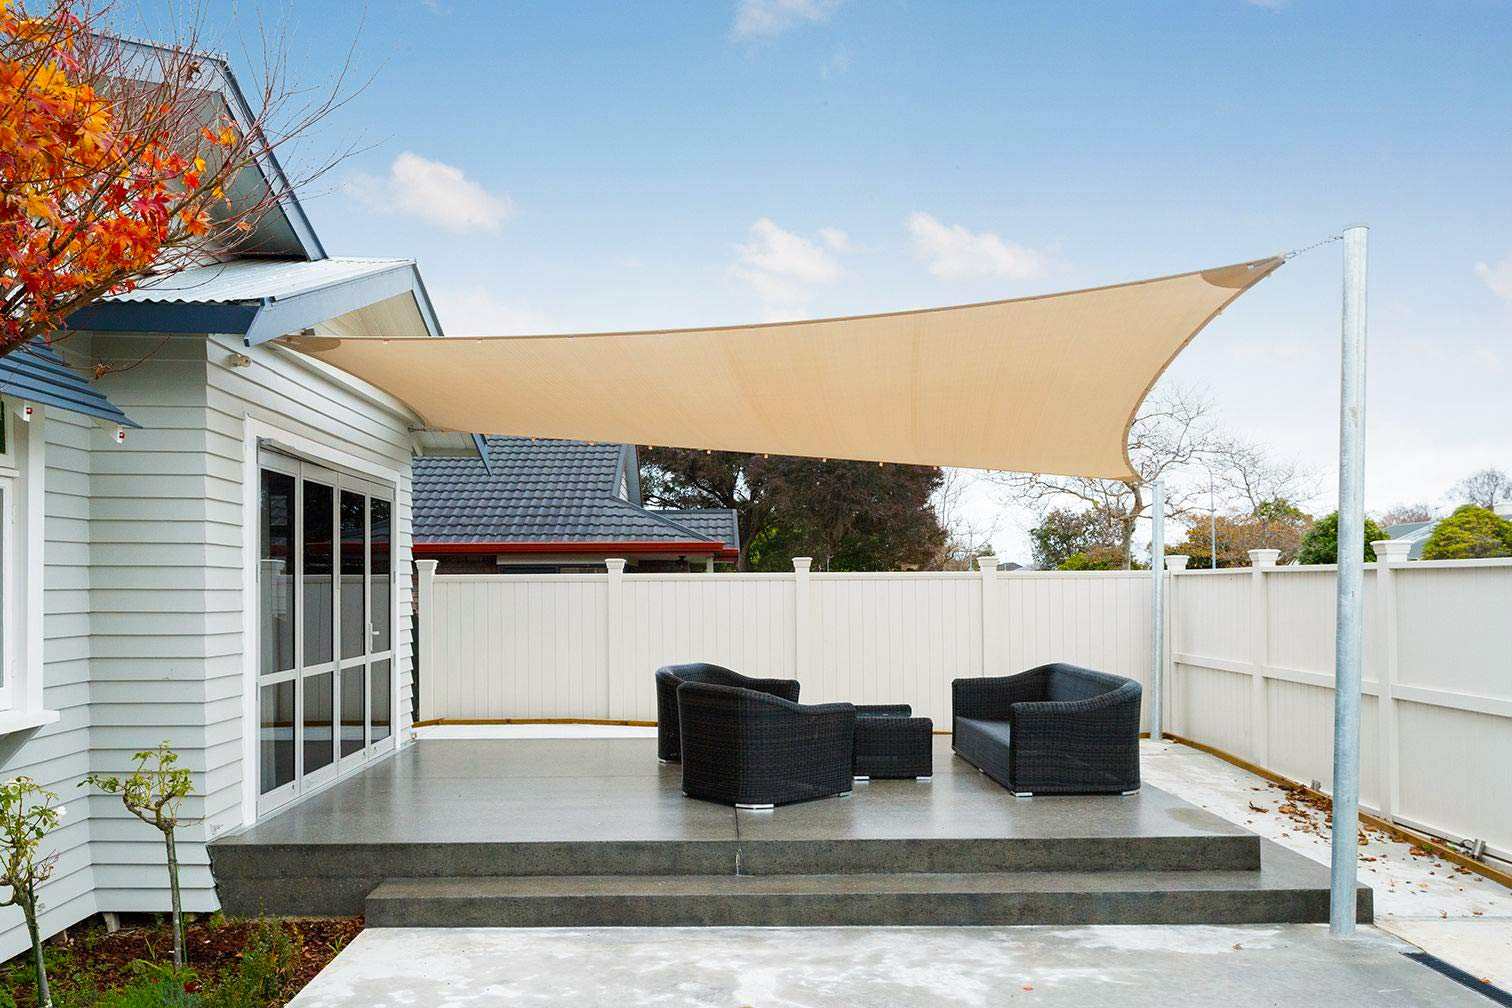 SUNNY GUARD 13' x 19.5' Sand Rectangle Sun Shade Sail UV Block for Outdoor Patio Garden by SUNNY GUARD (Image #3)